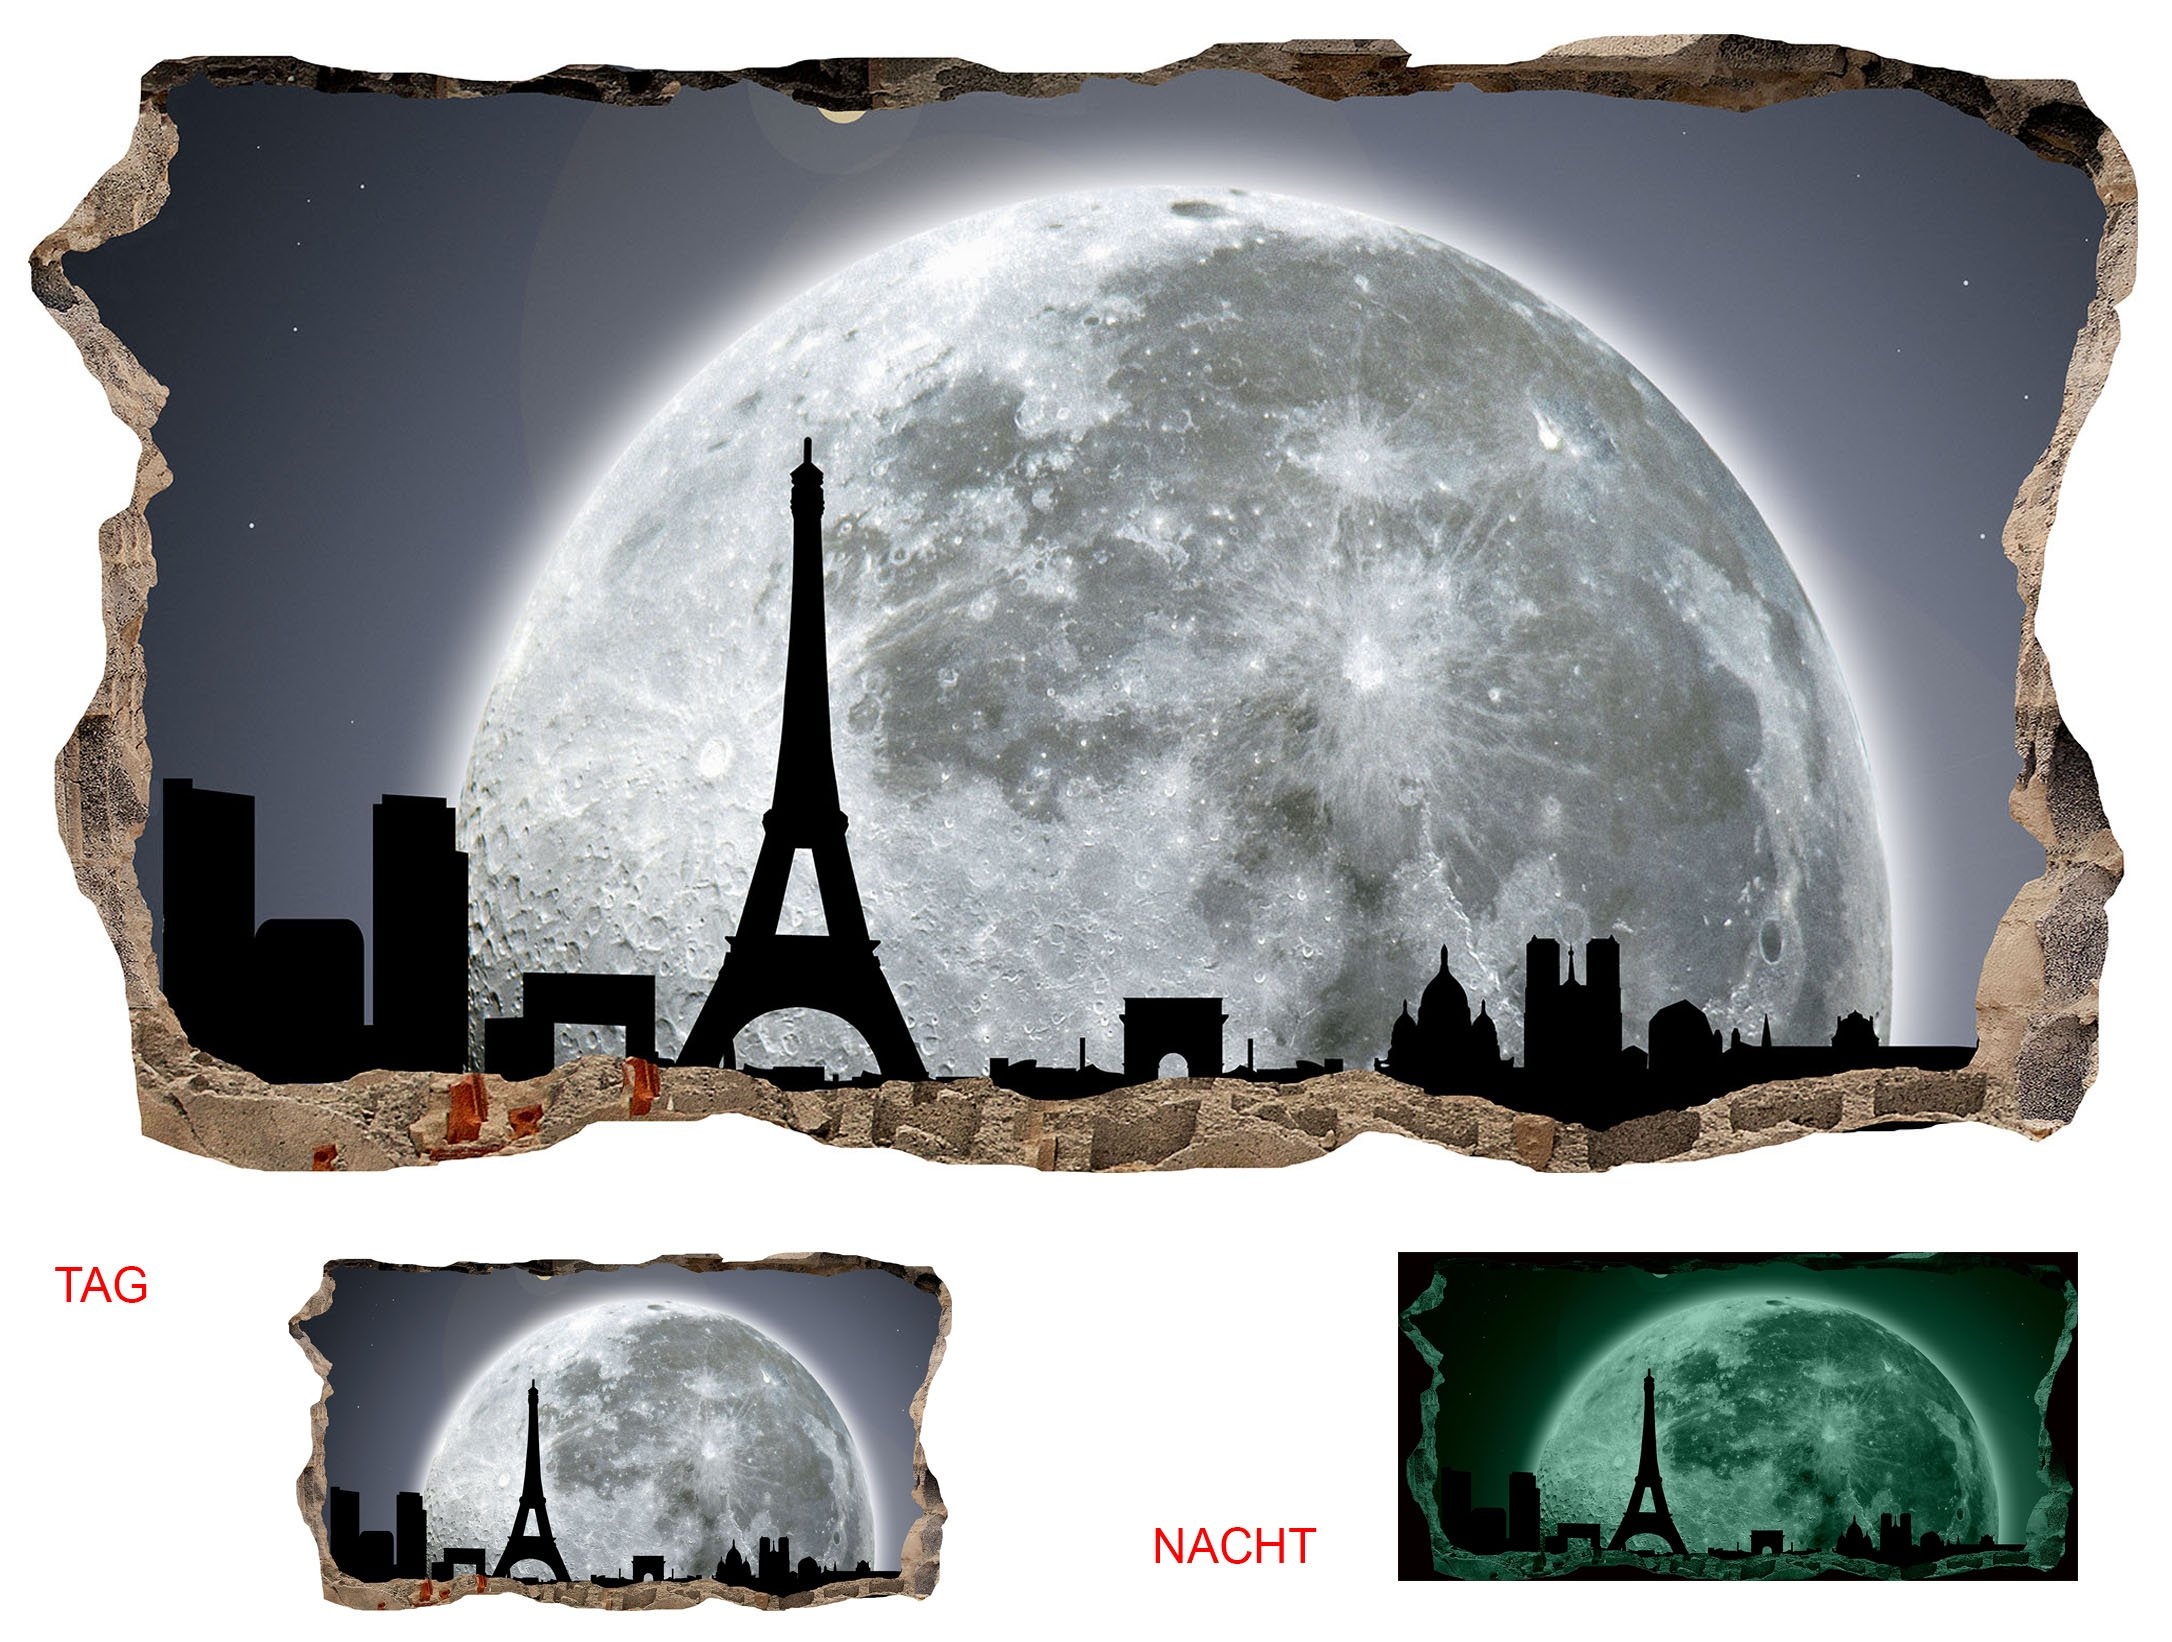 Startonight 3D Mural Wall Art Photo Décor Window Moon for Paris Amazing Dual View Surprise Large Wall Mural Wallpaper for Living Room or Bedroom Urban 120 x 220 cm